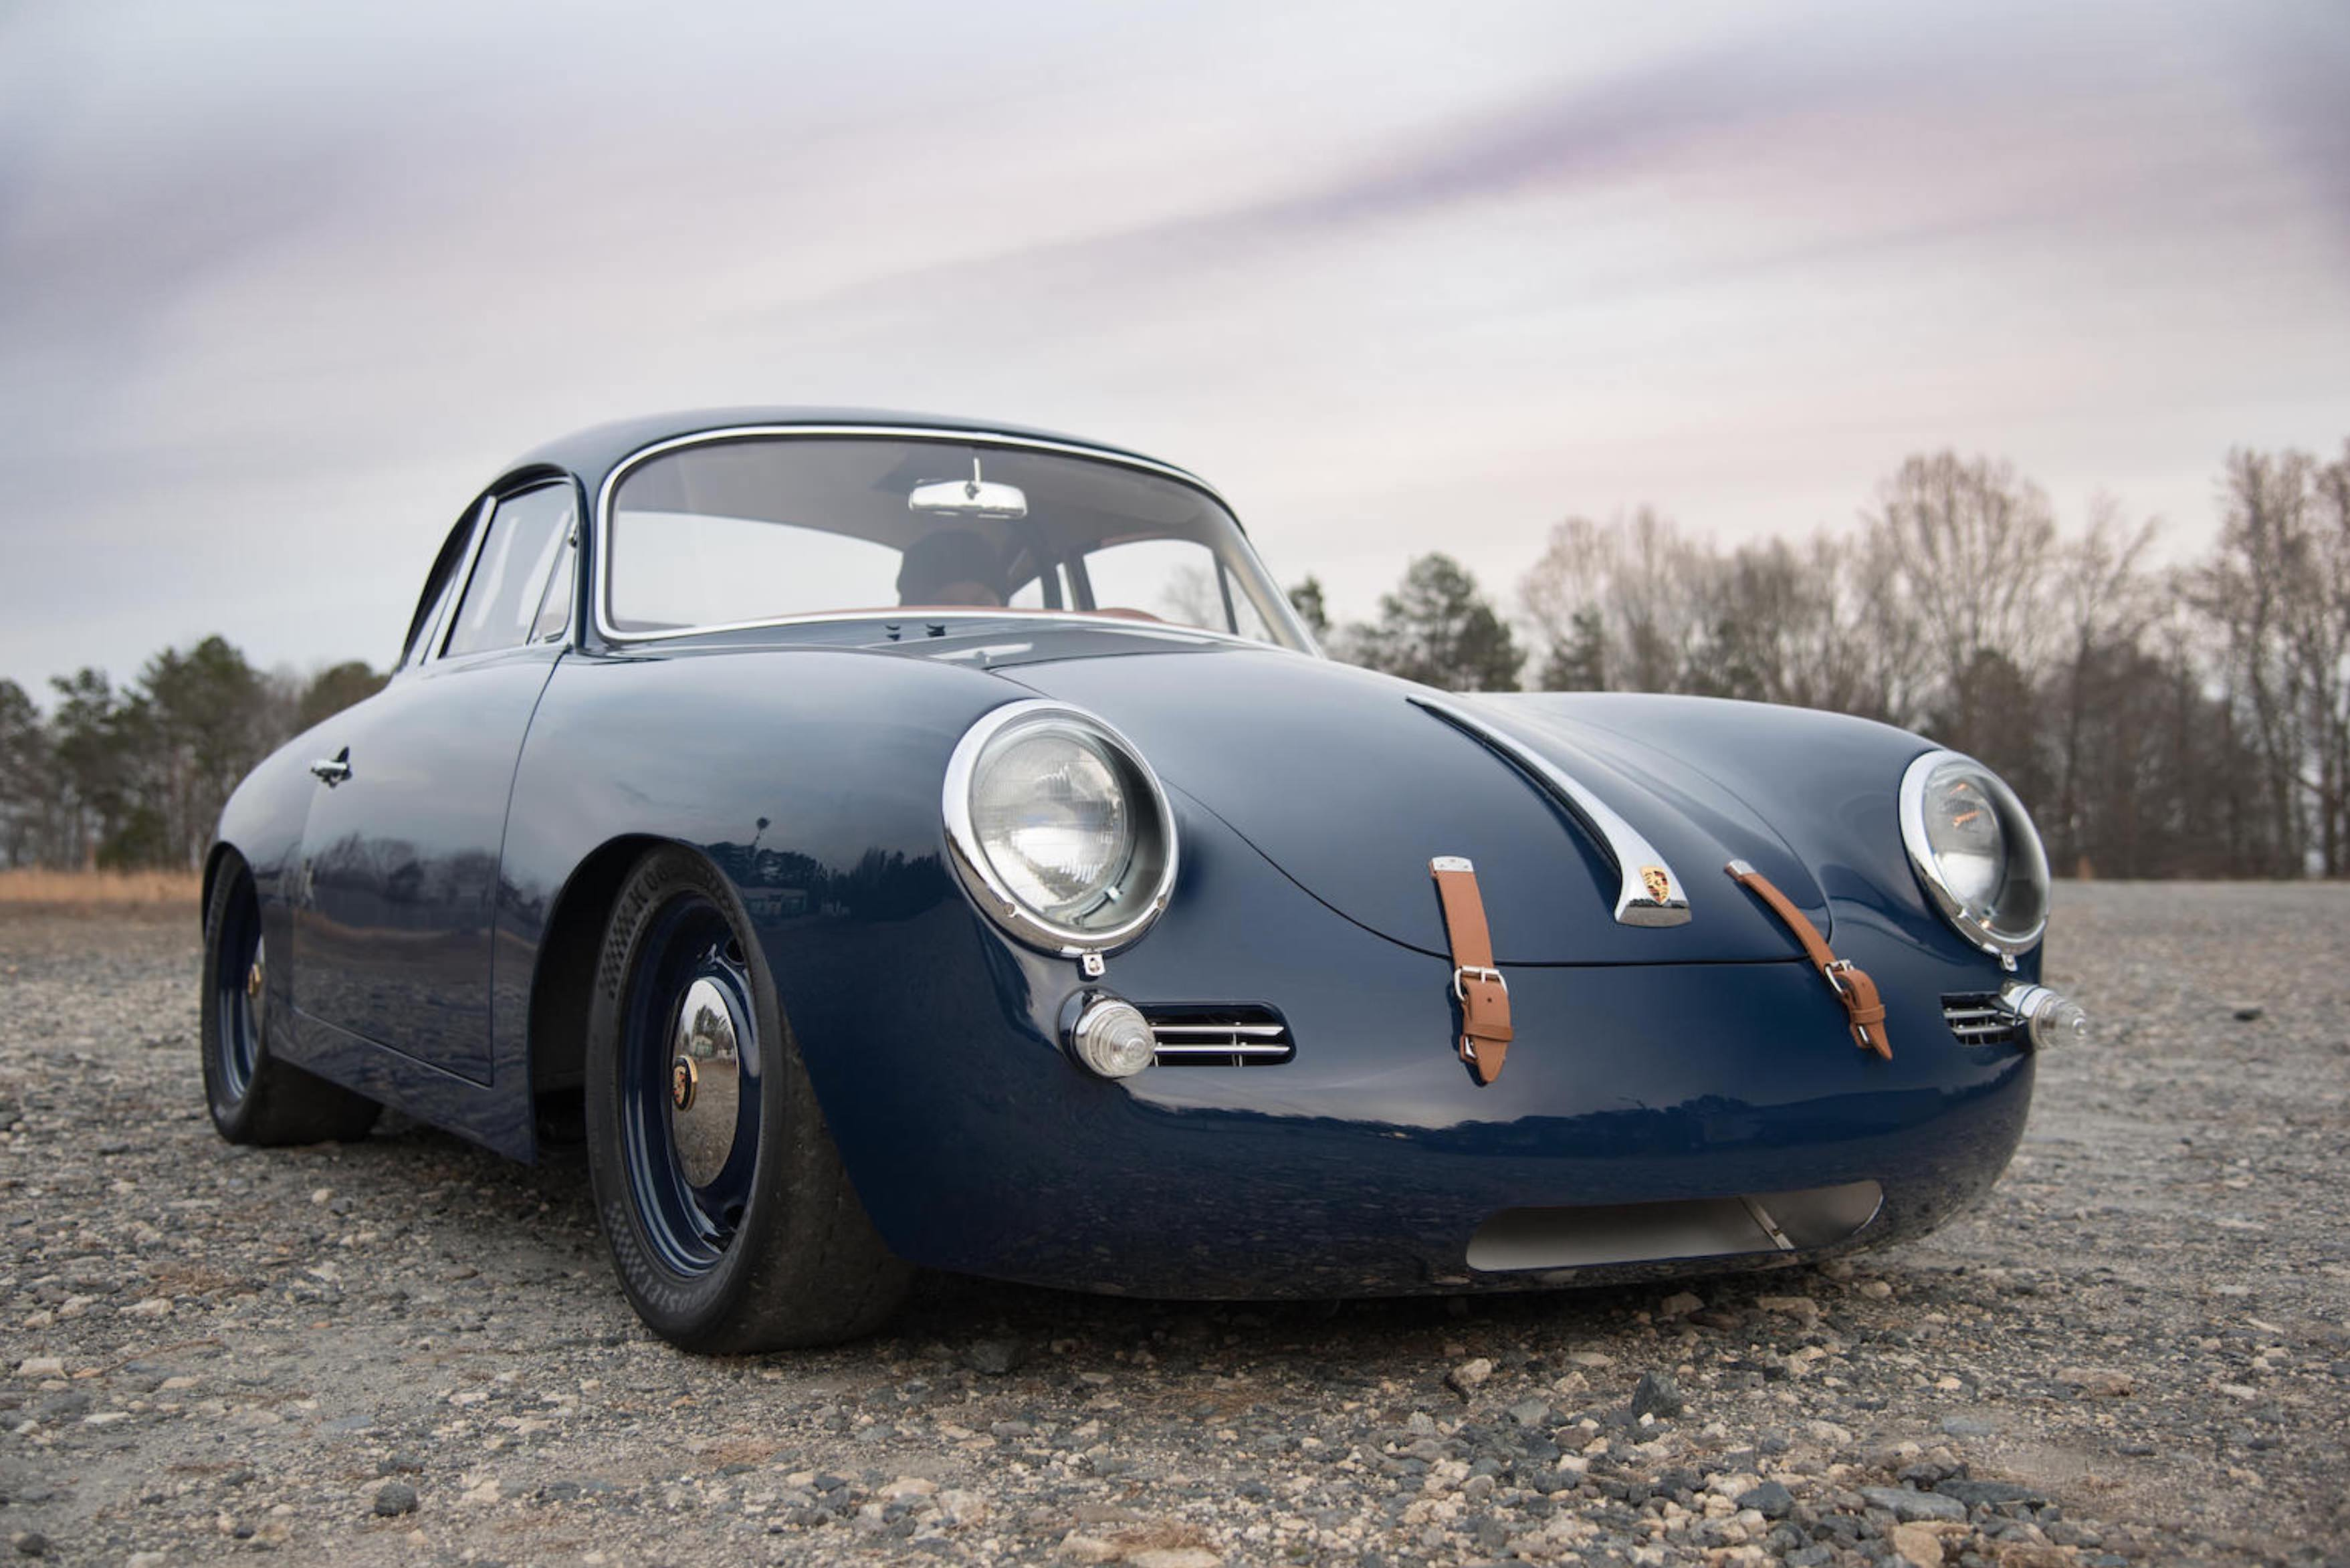 A 1964 Porsche 356 Outlaw With A 236 Hp 2 8 Liter Flat 6